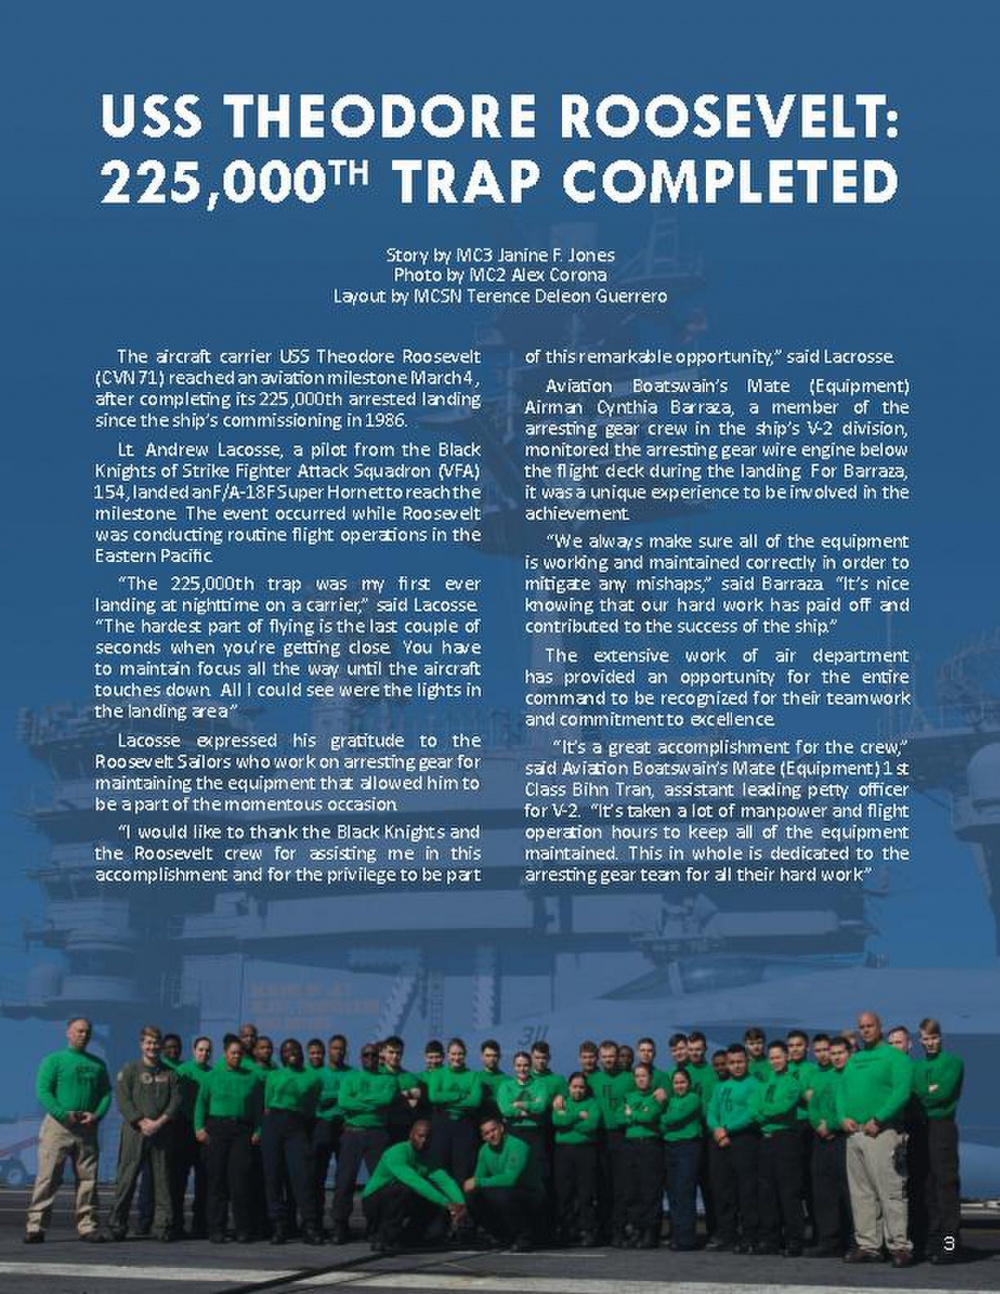 USS Theodore Roosevelt 225,000th Trap Completed